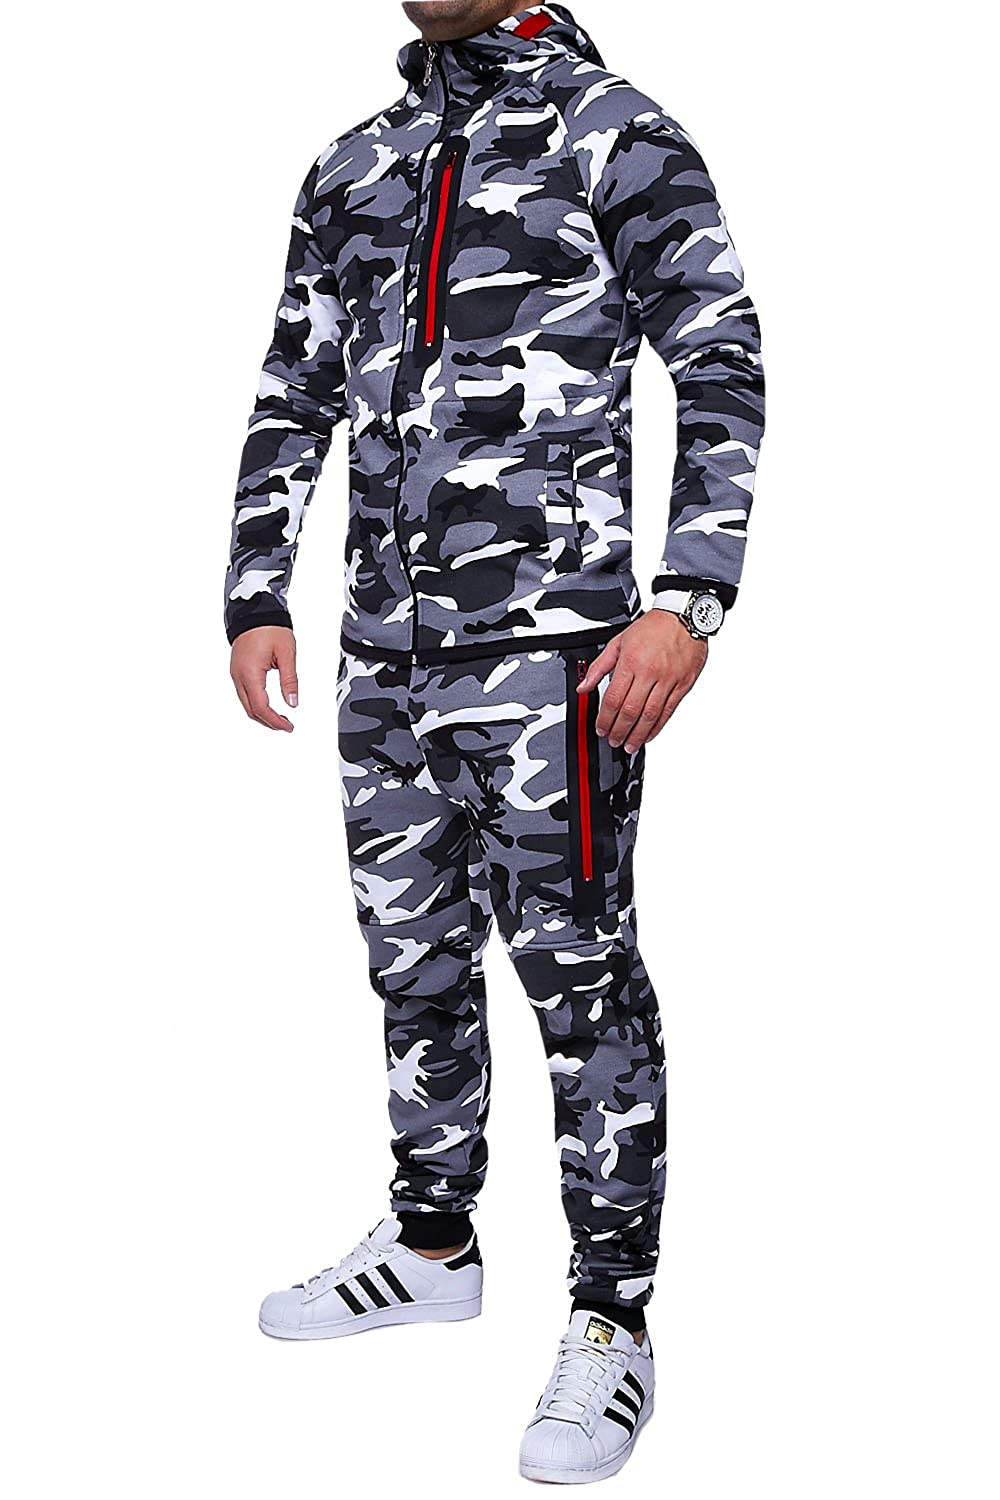 MT Styles Jogging survêtement Harlem Homme TR-5037 MYTRENDS Styles